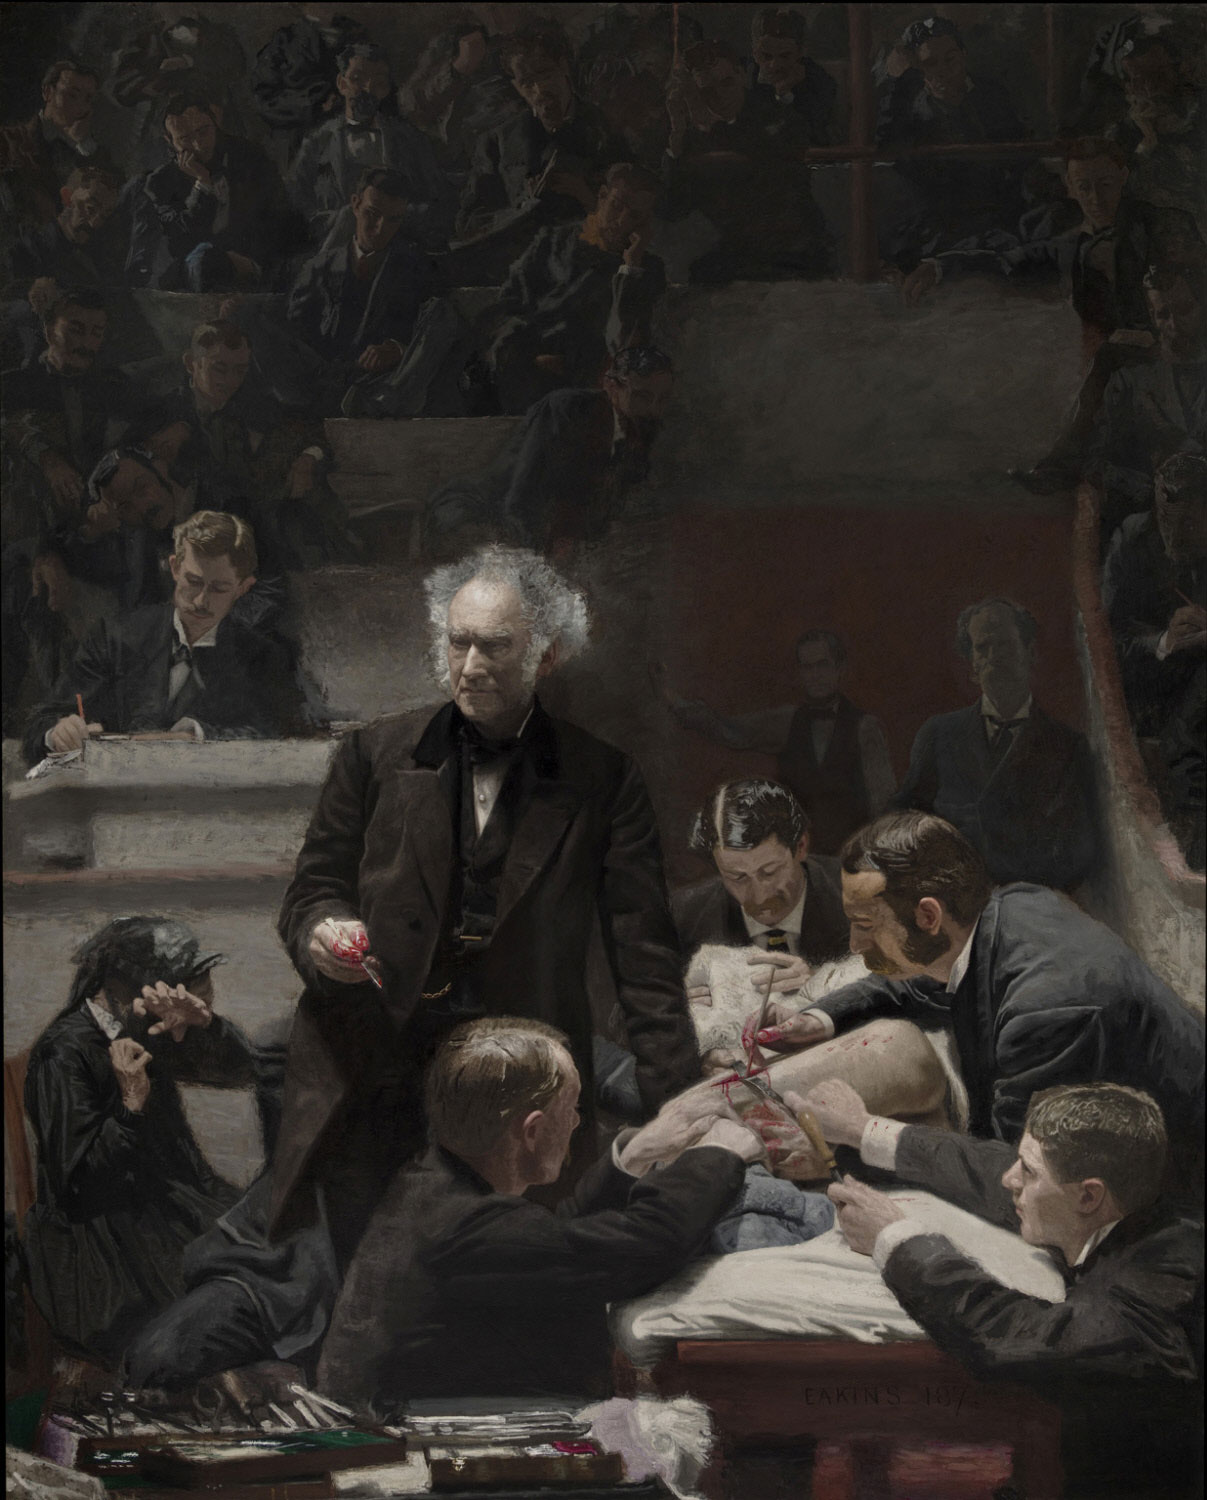 The Gross Clinic by Thomas Eakins, 1875.